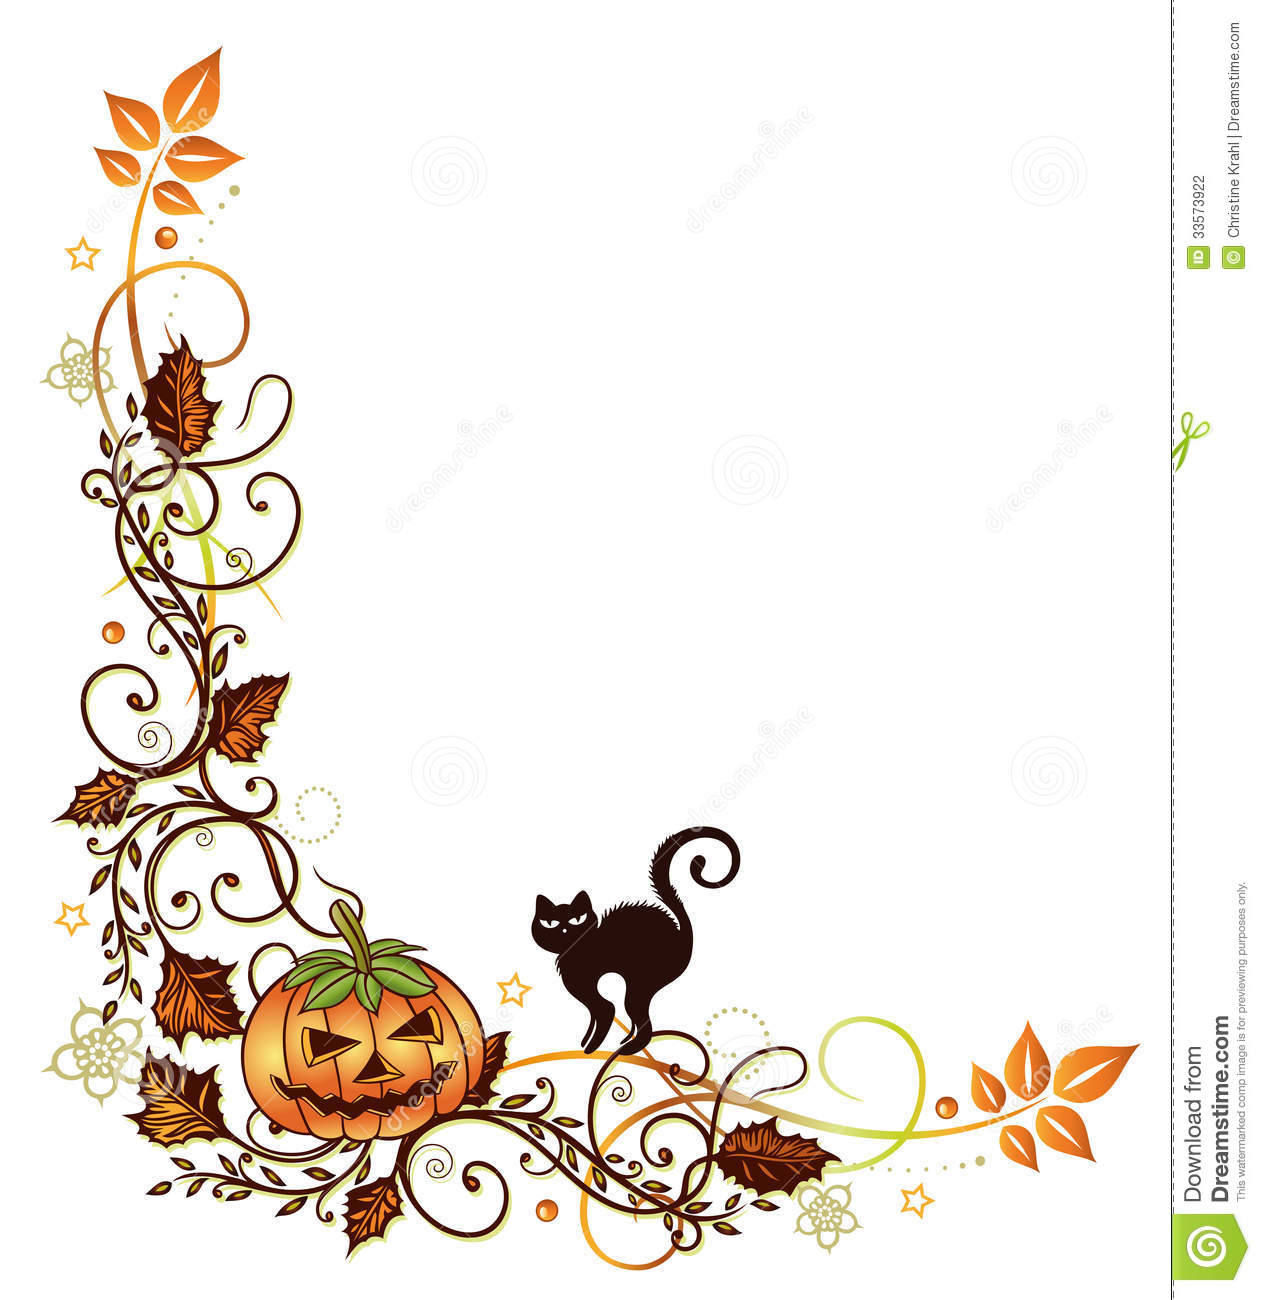 Pumpkin Border Black And White Clipart.